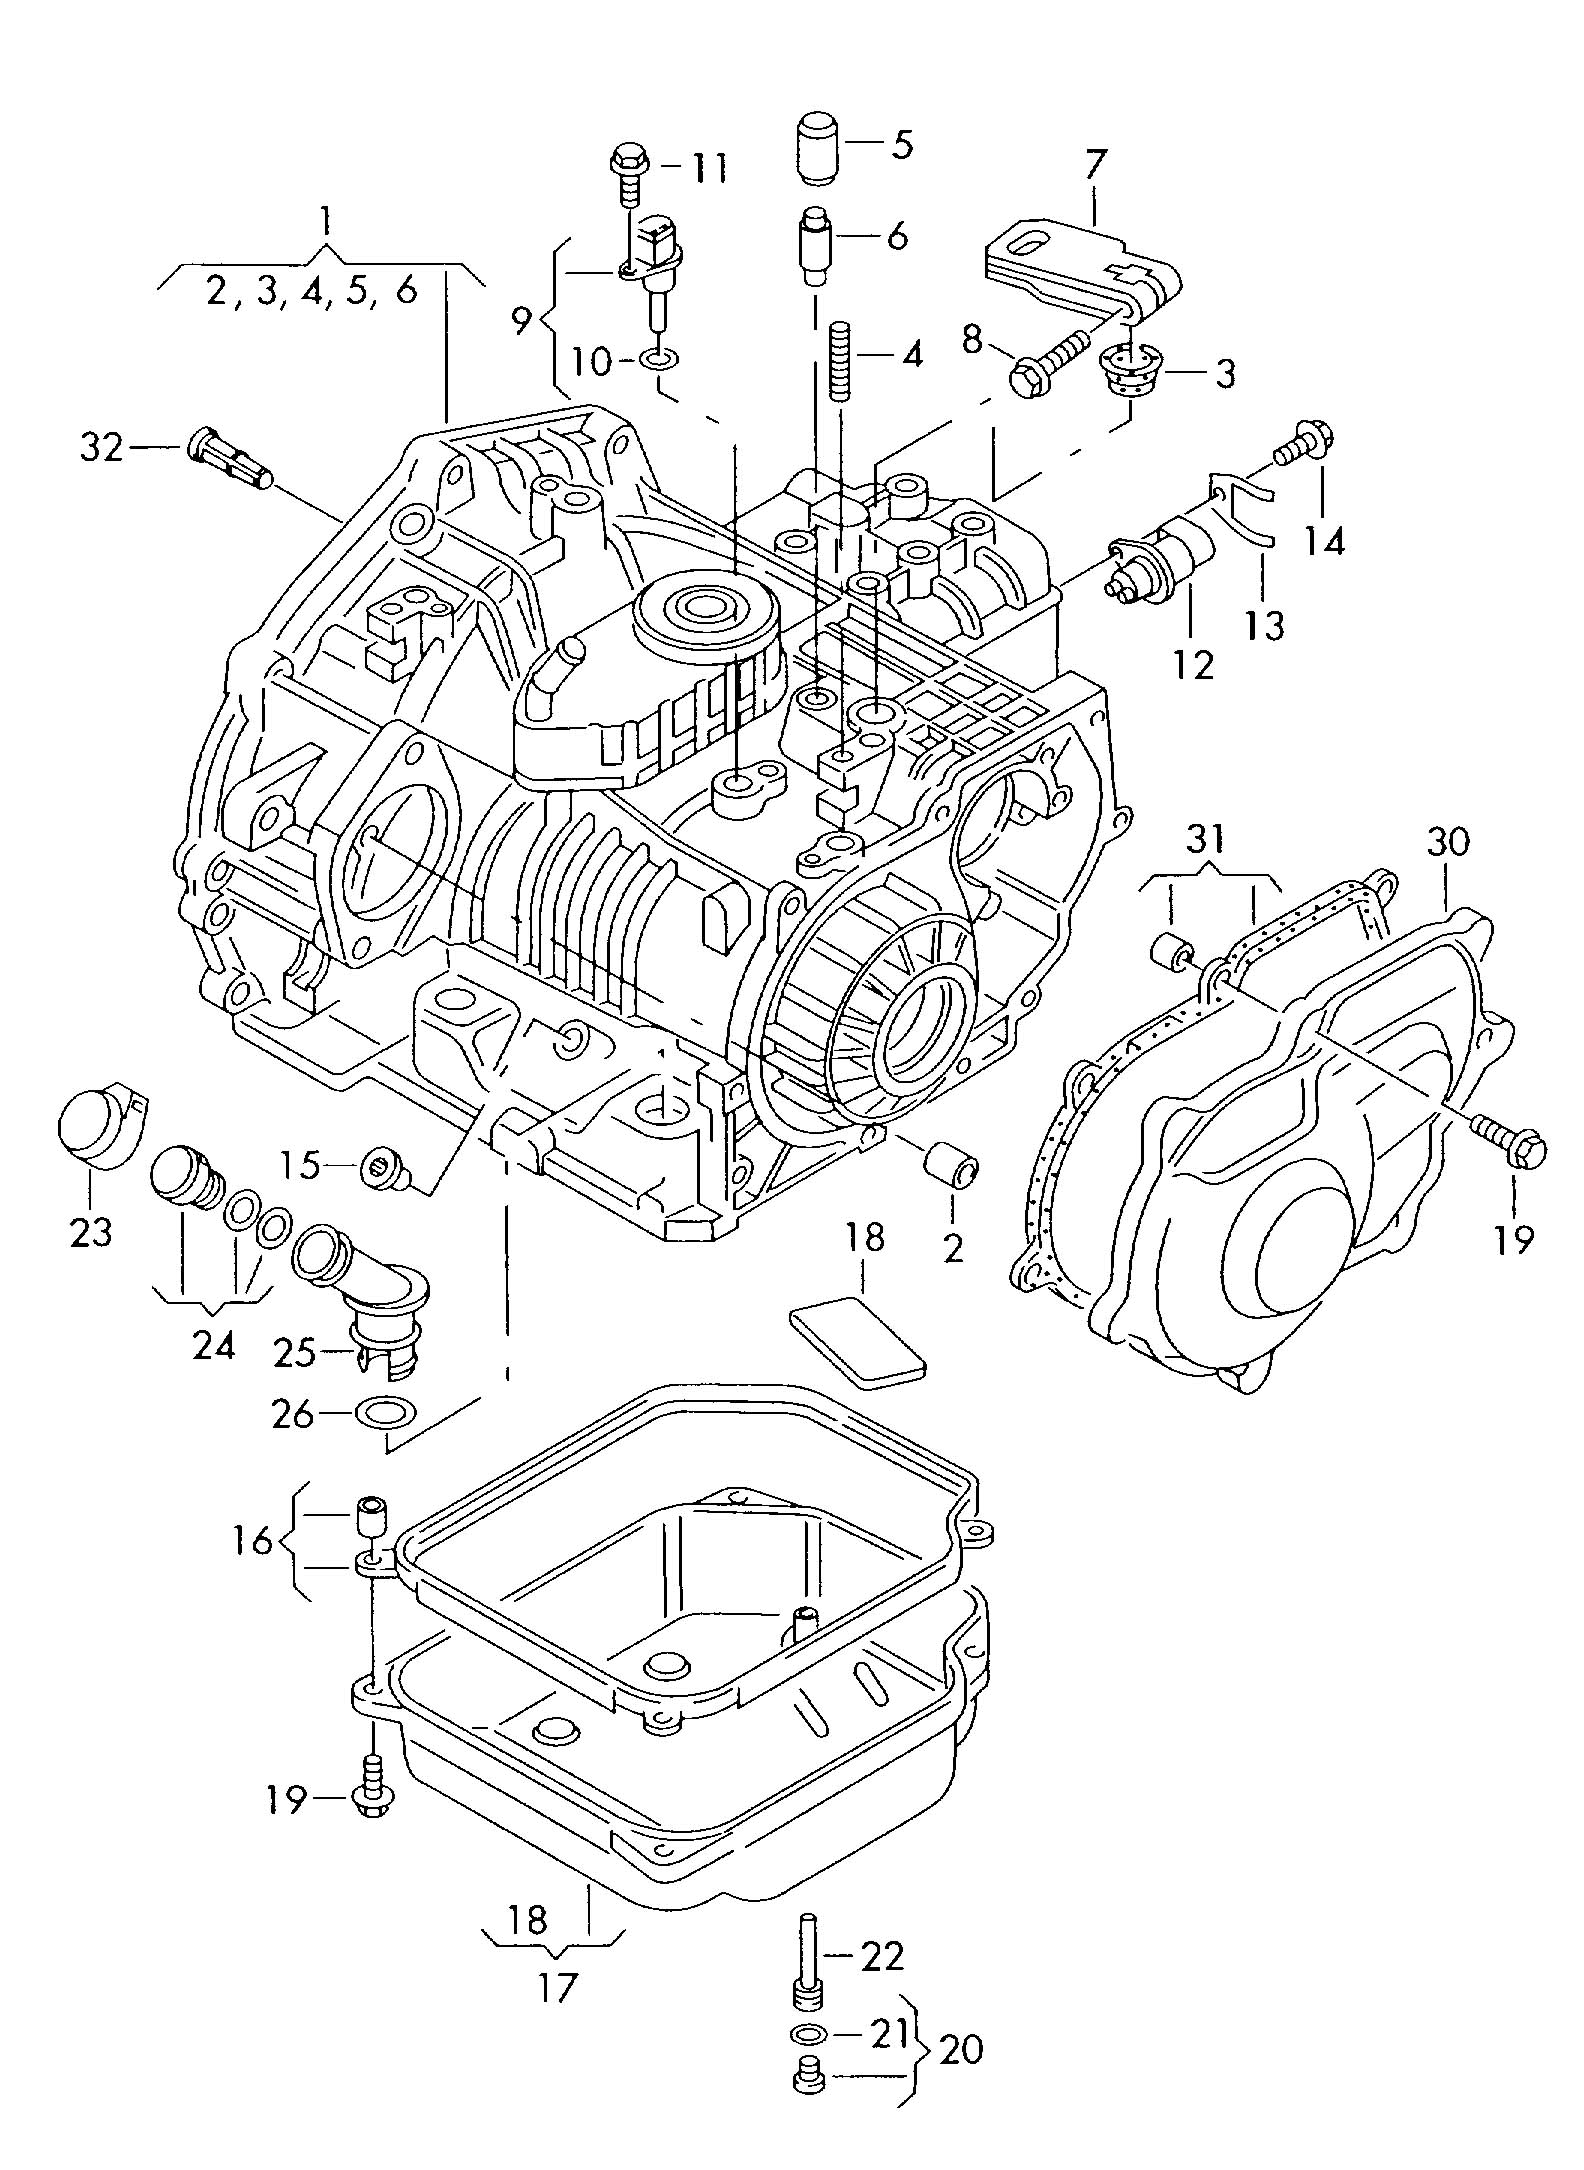 2000 jetta automatic transmission wiring diagram free download